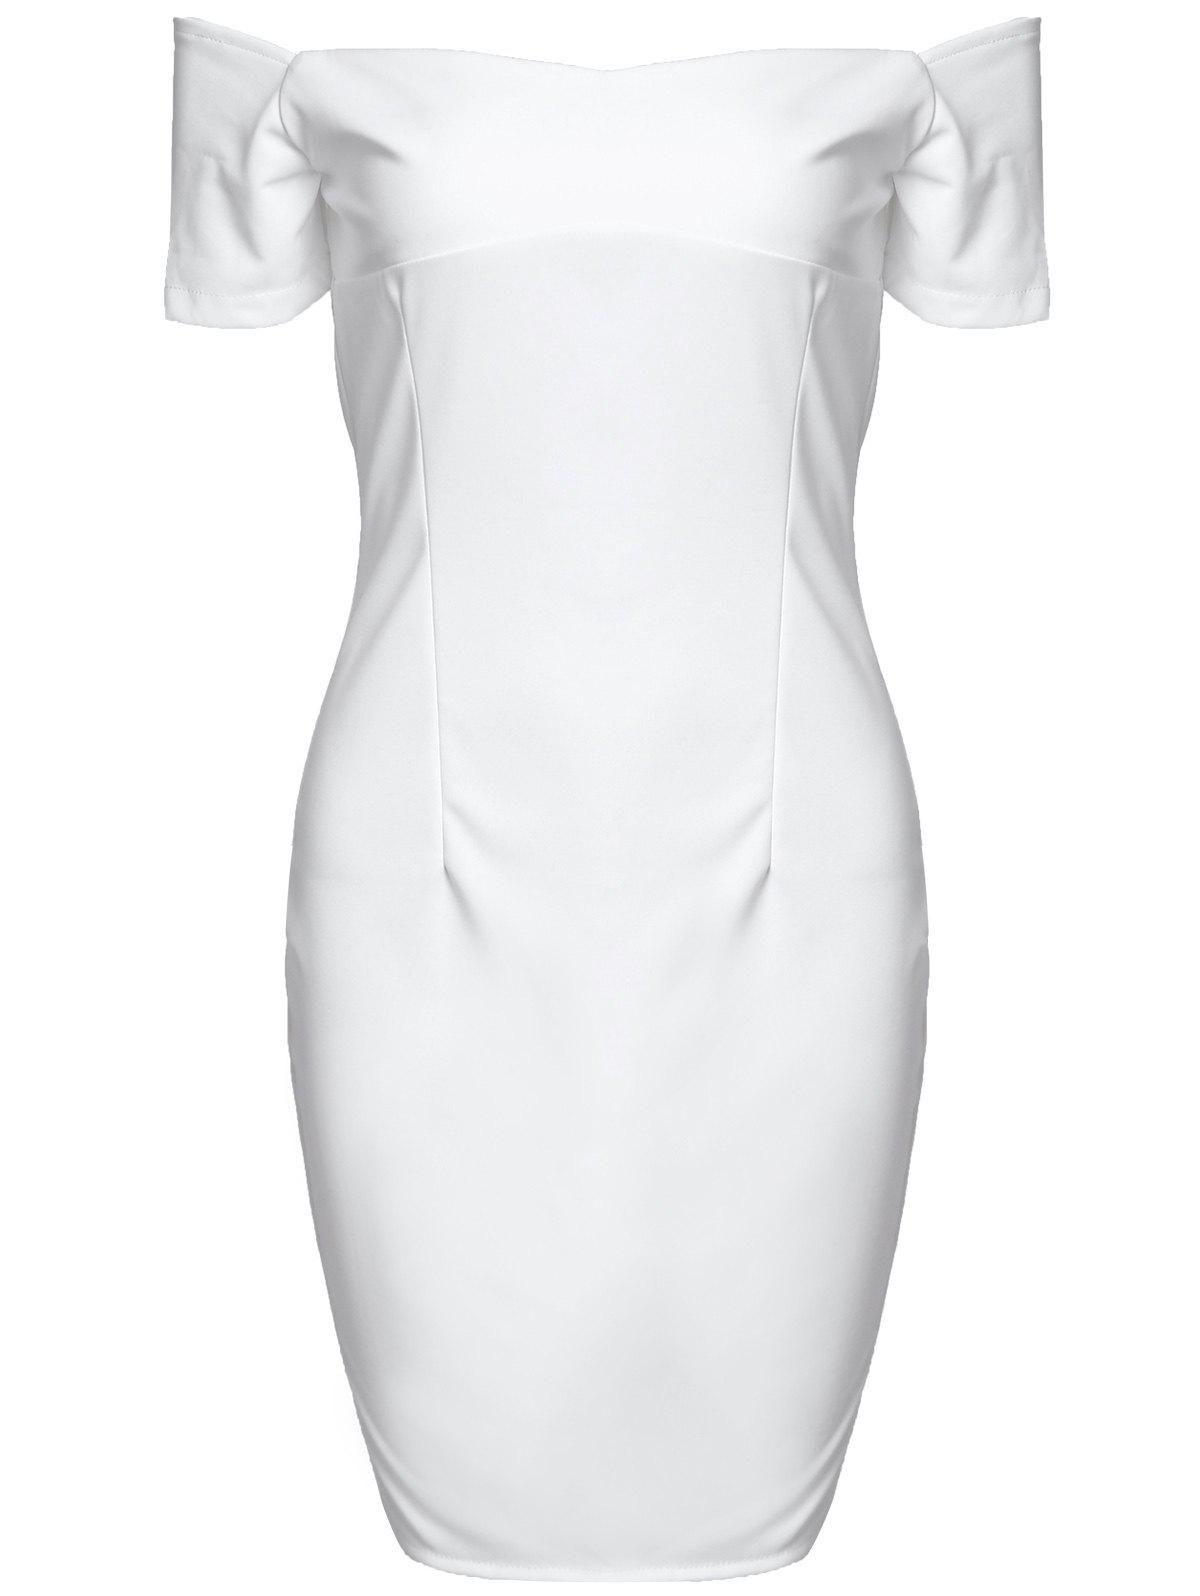 Stylish Women's Off The Shoulder Short Sleeve Solid Color Bodycon Dress - WHITE L